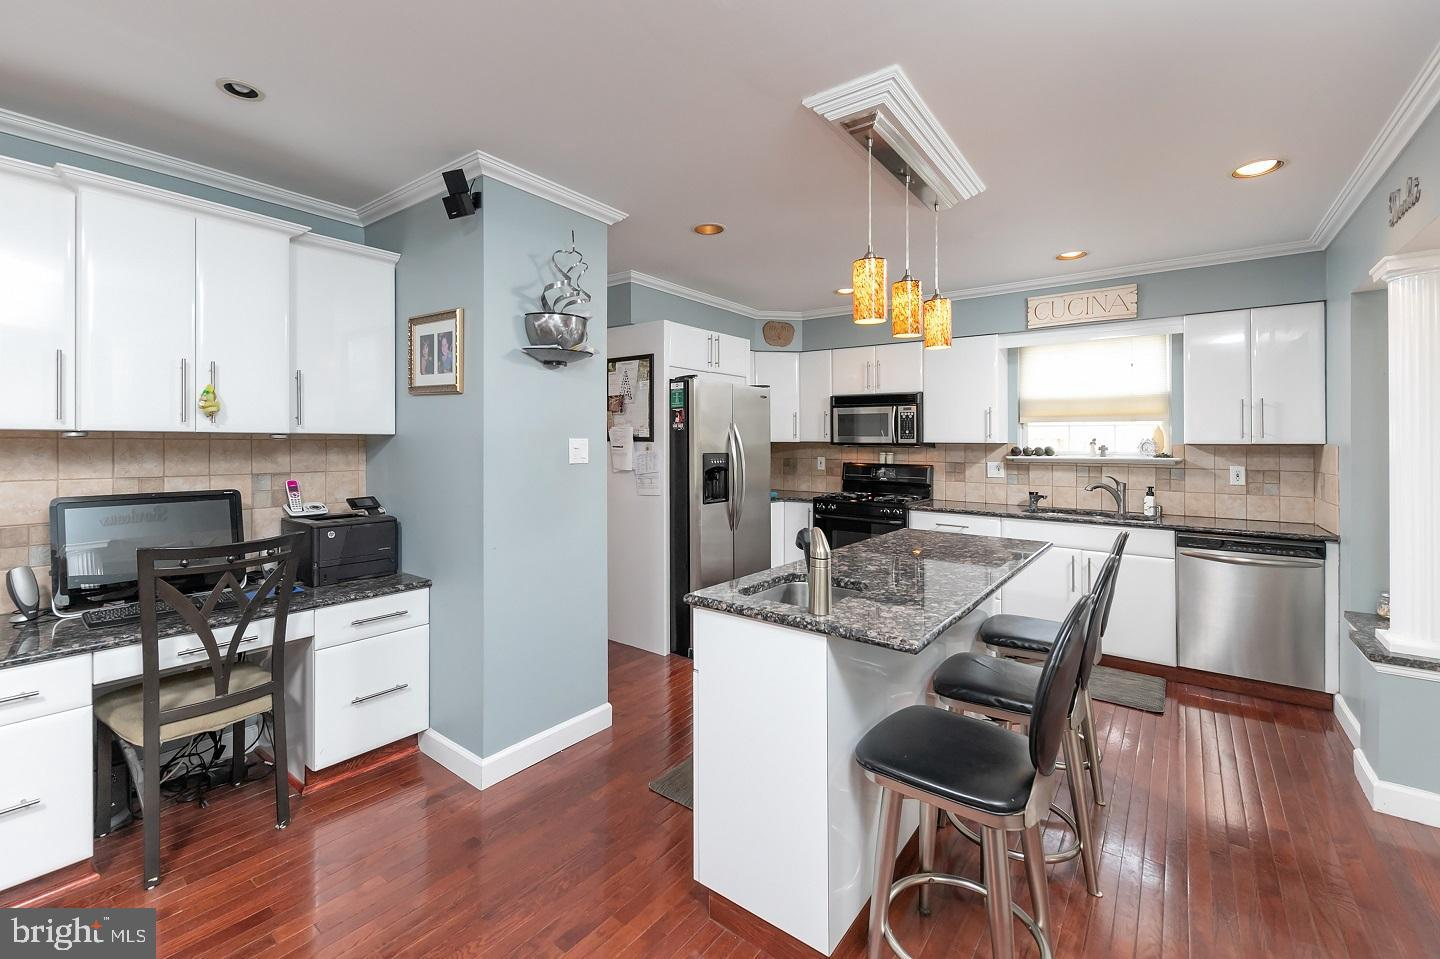 Cucina Greenwood 24 Greenwood Drive Sewell 08080 Sold Listing Mls Njgl230974 Re Max Of Reading